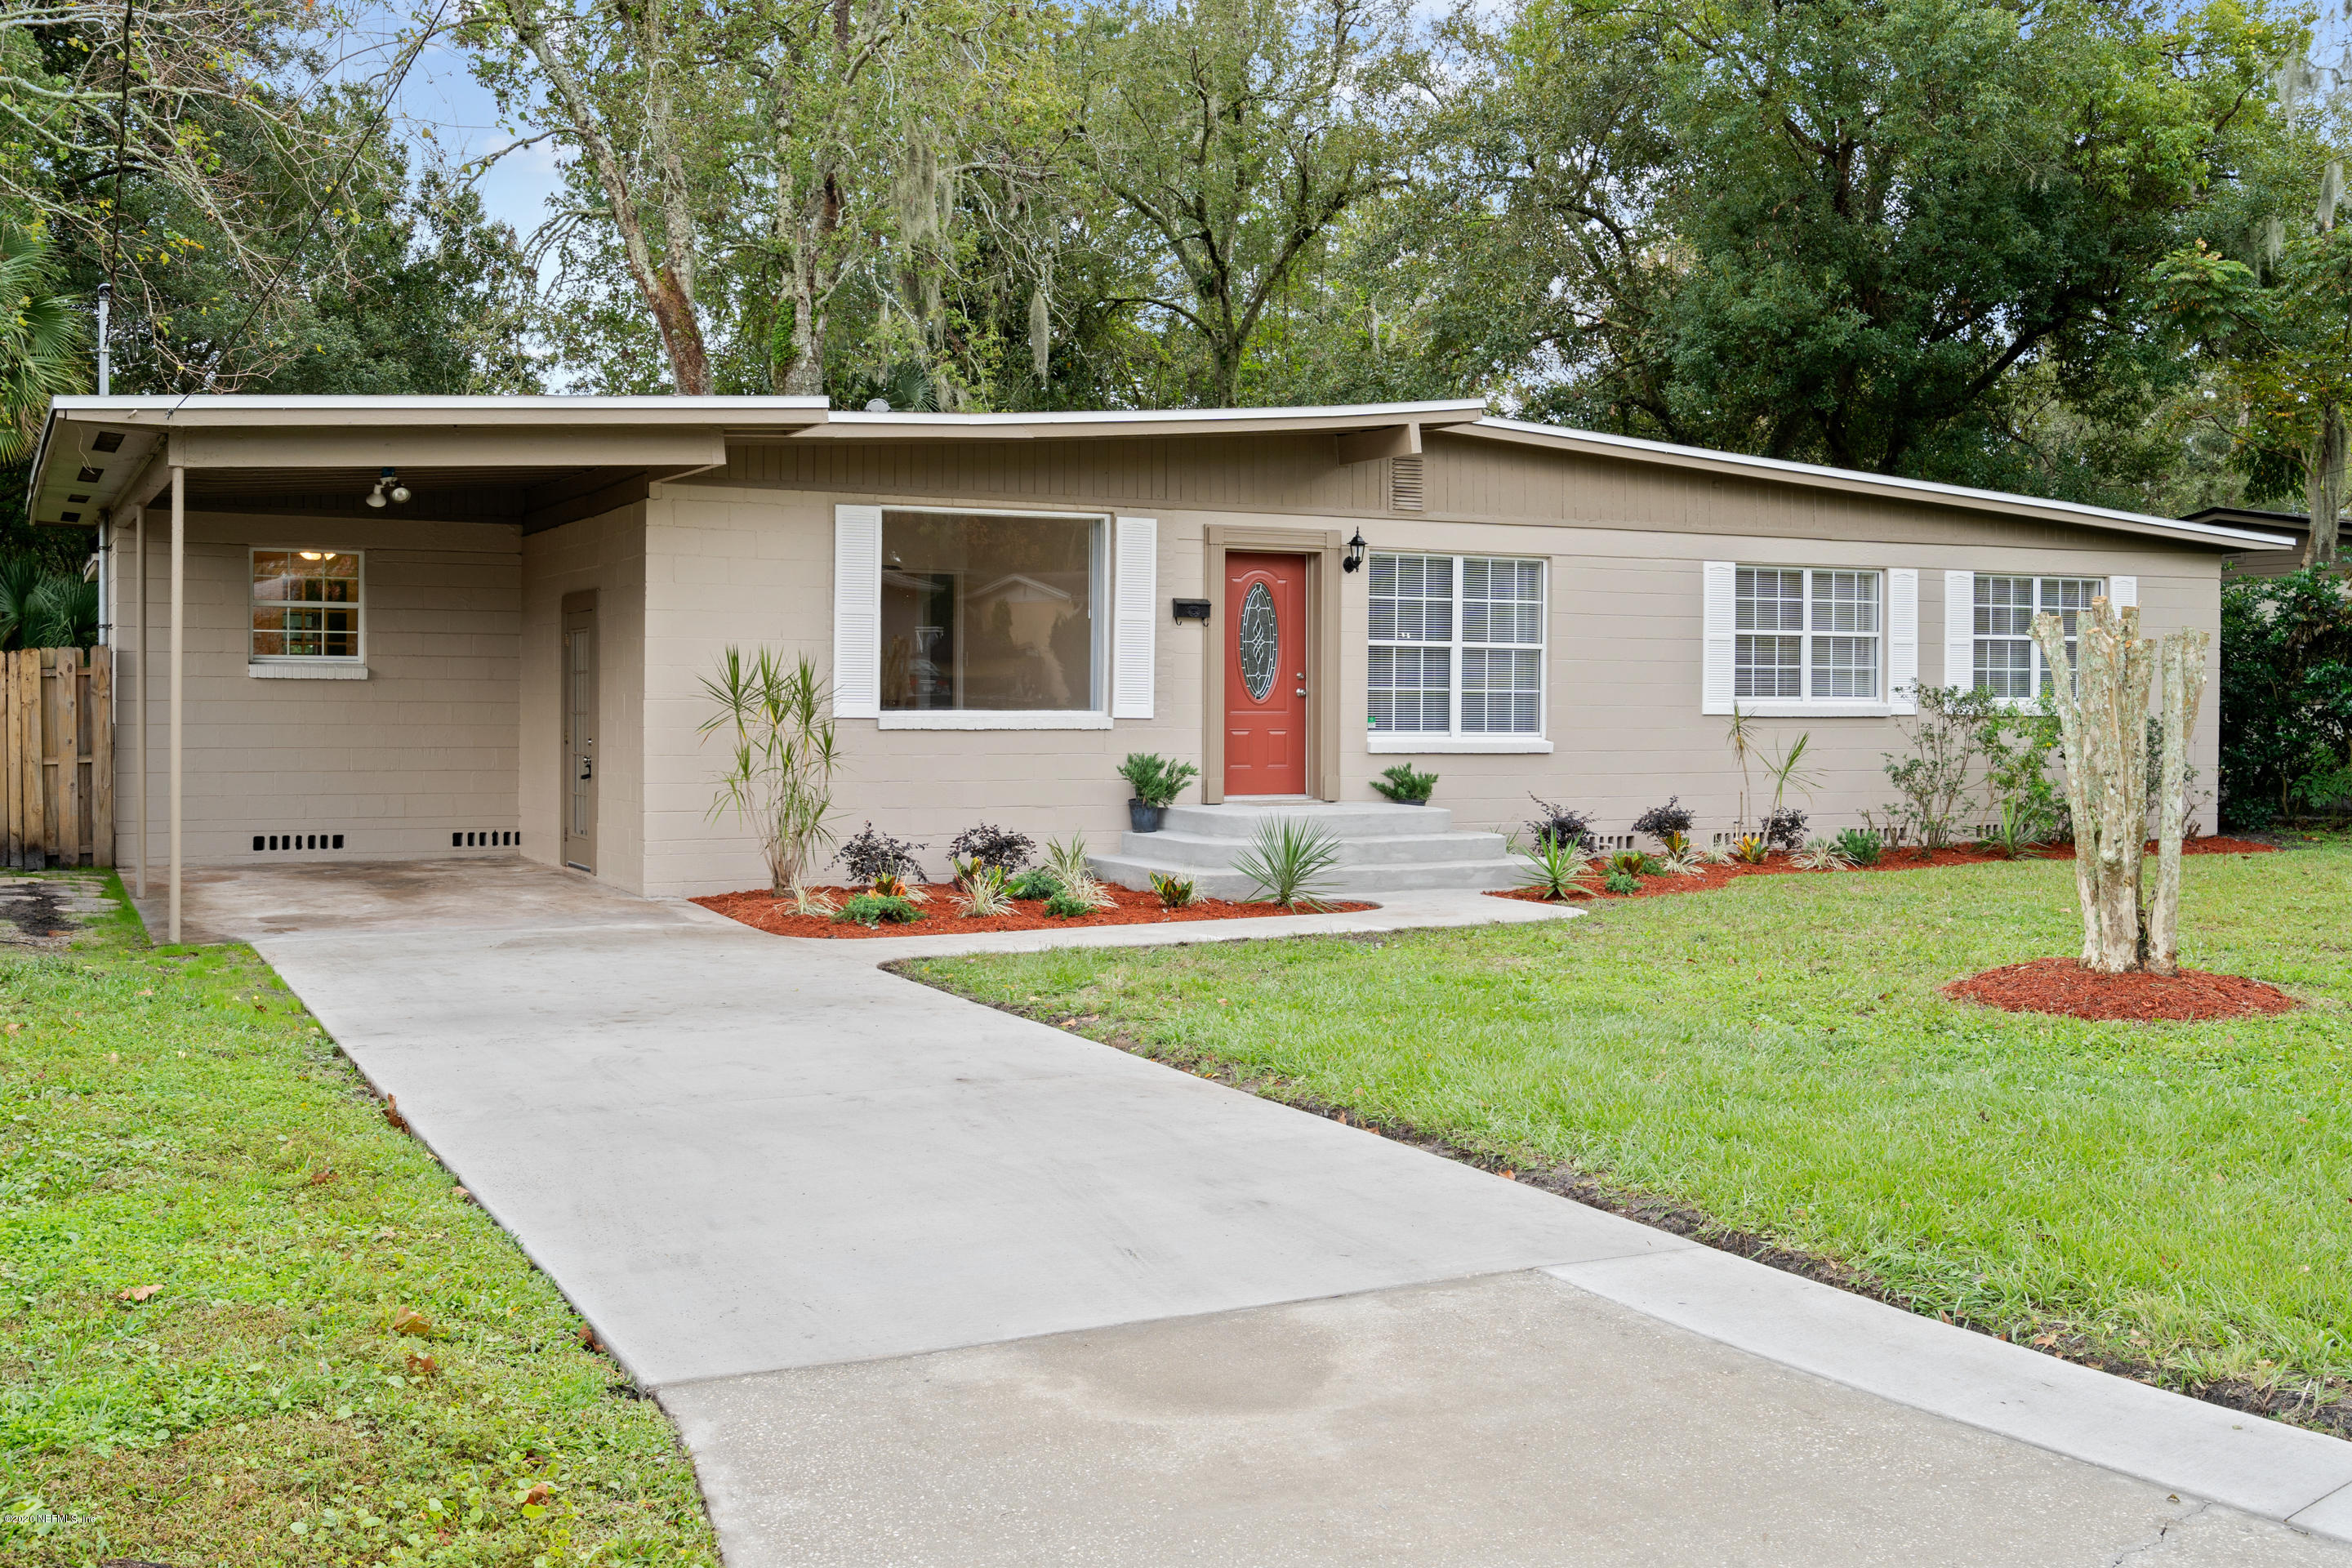 4006 CONGA, JACKSONVILLE, FLORIDA 32217, 3 Bedrooms Bedrooms, ,2 BathroomsBathrooms,Residential,For sale,CONGA,1081753